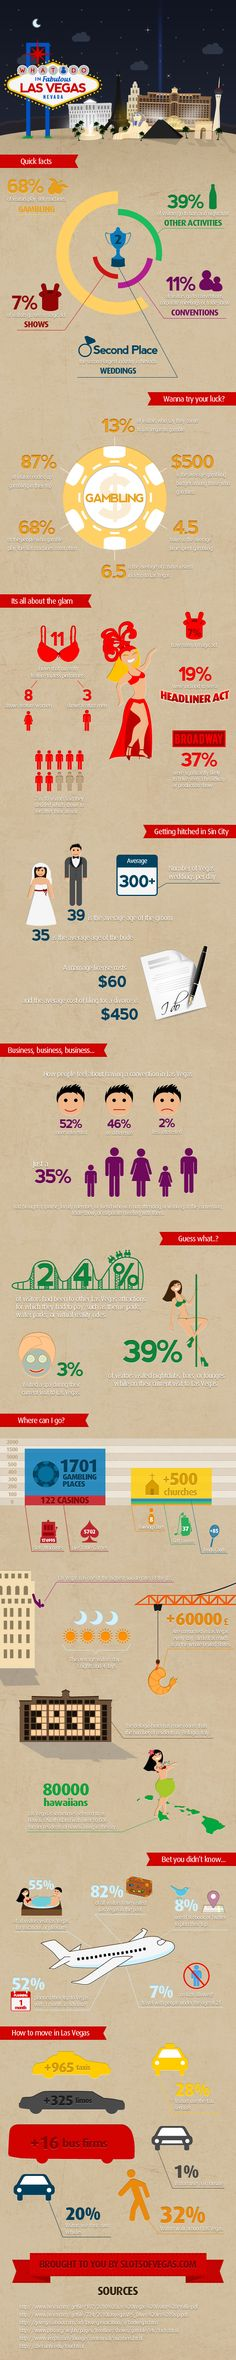 What Happens in Vegas... is on this Infographic.